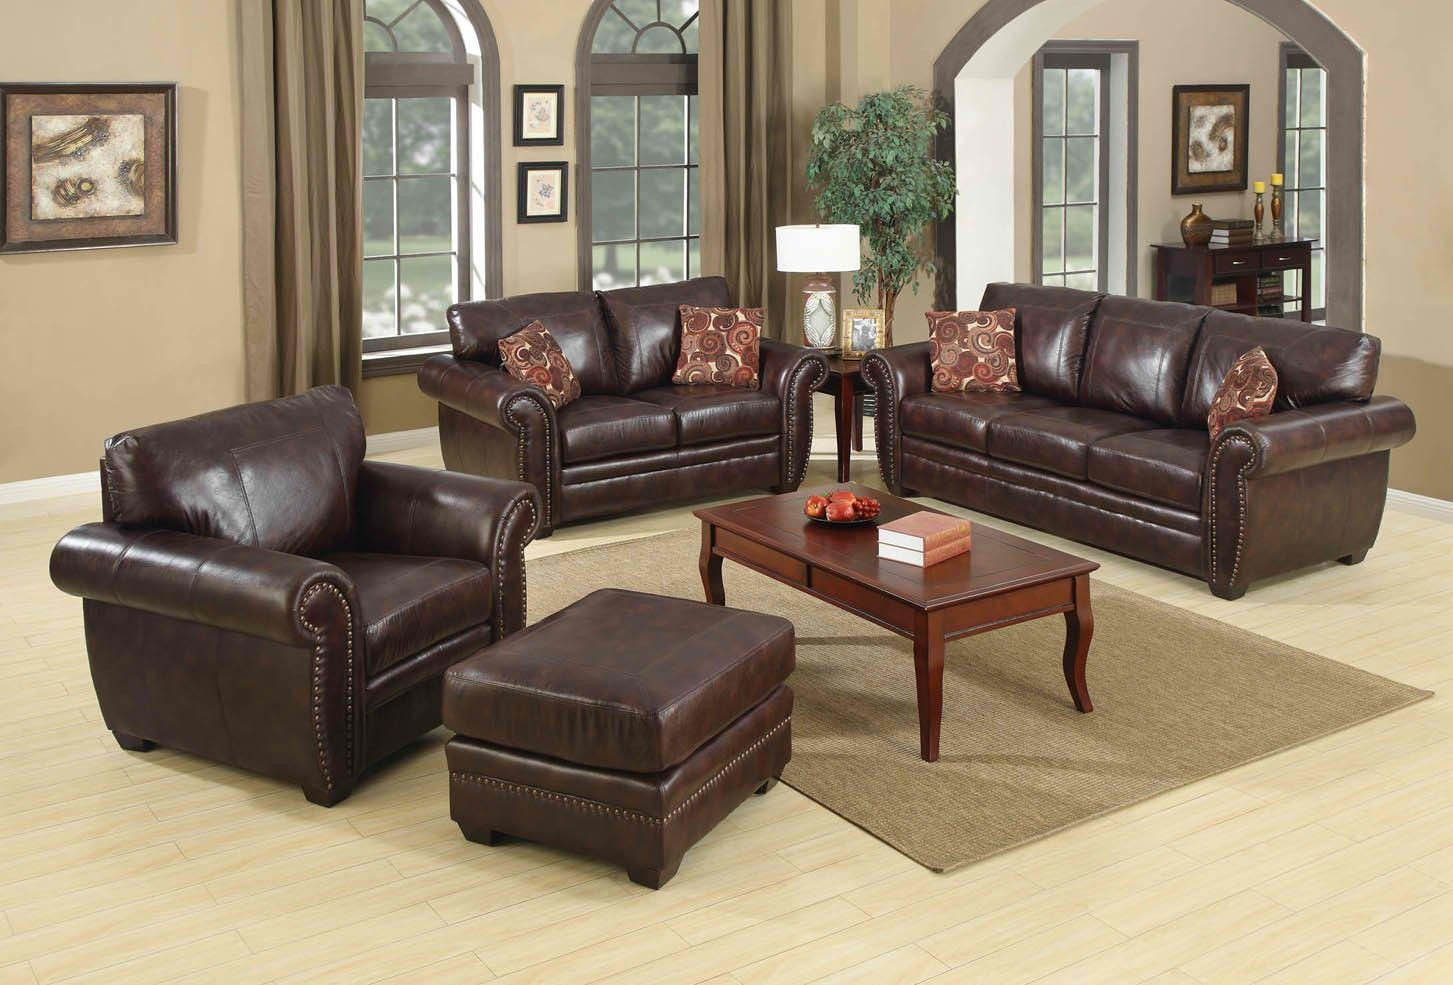 Paint ideas for living room with brown furniture - Wall Colors For Brown Furniture List 17 Ideas In Best Wall Color With Dark Brown